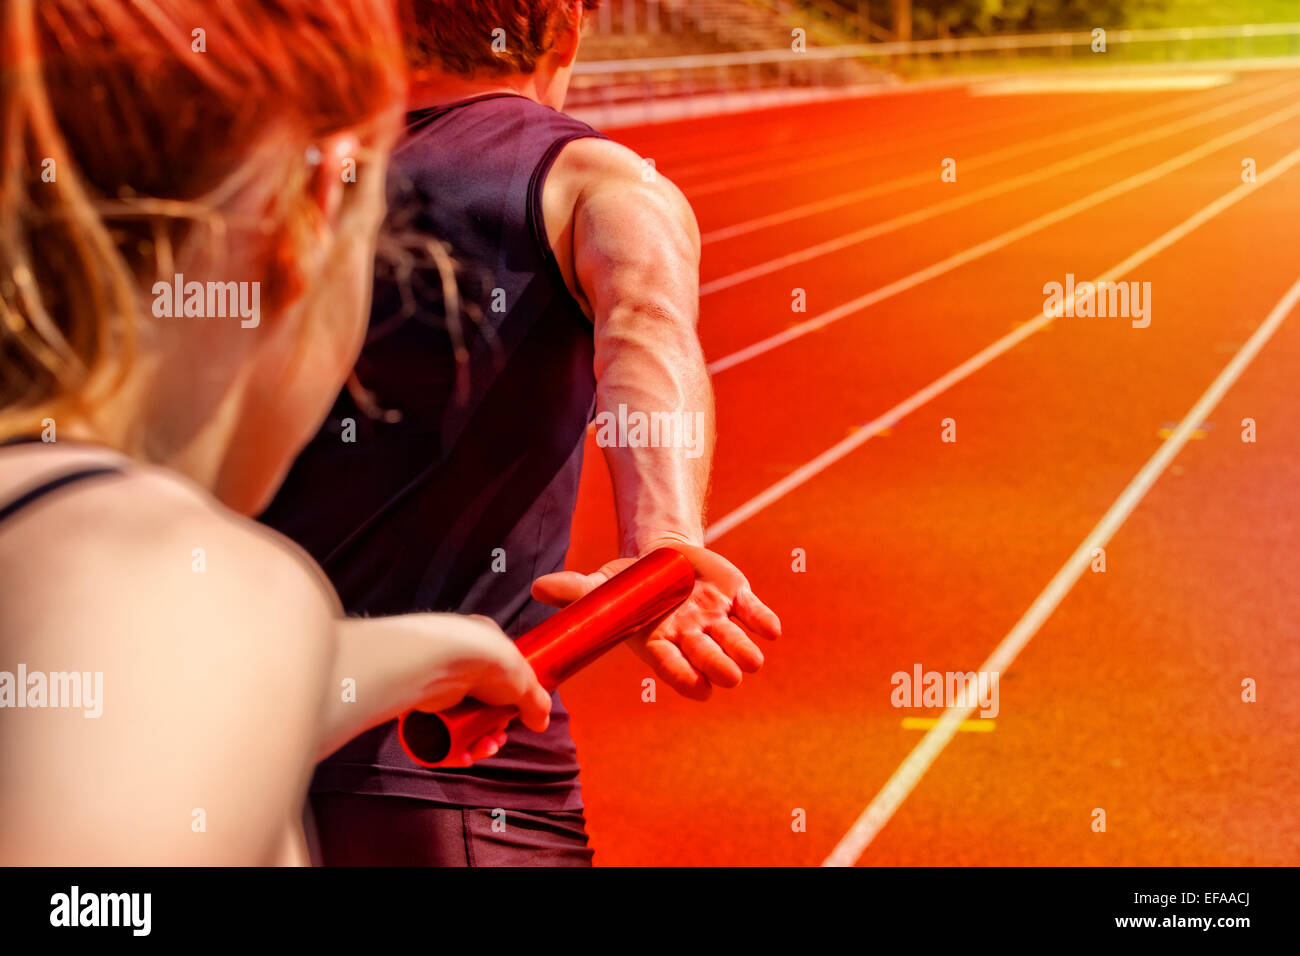 Relay race handing over from woman to man - Stock Image